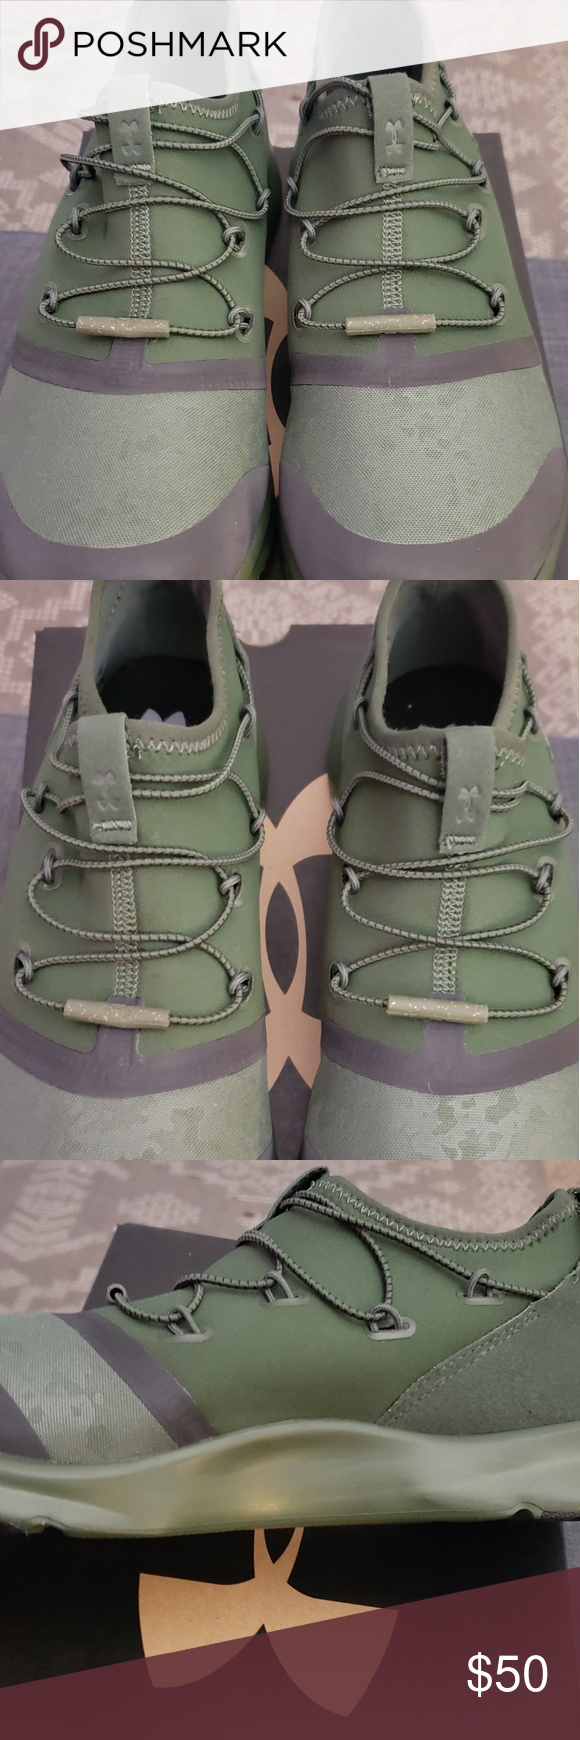 Under armour shoes, Tie shoes, Green camo